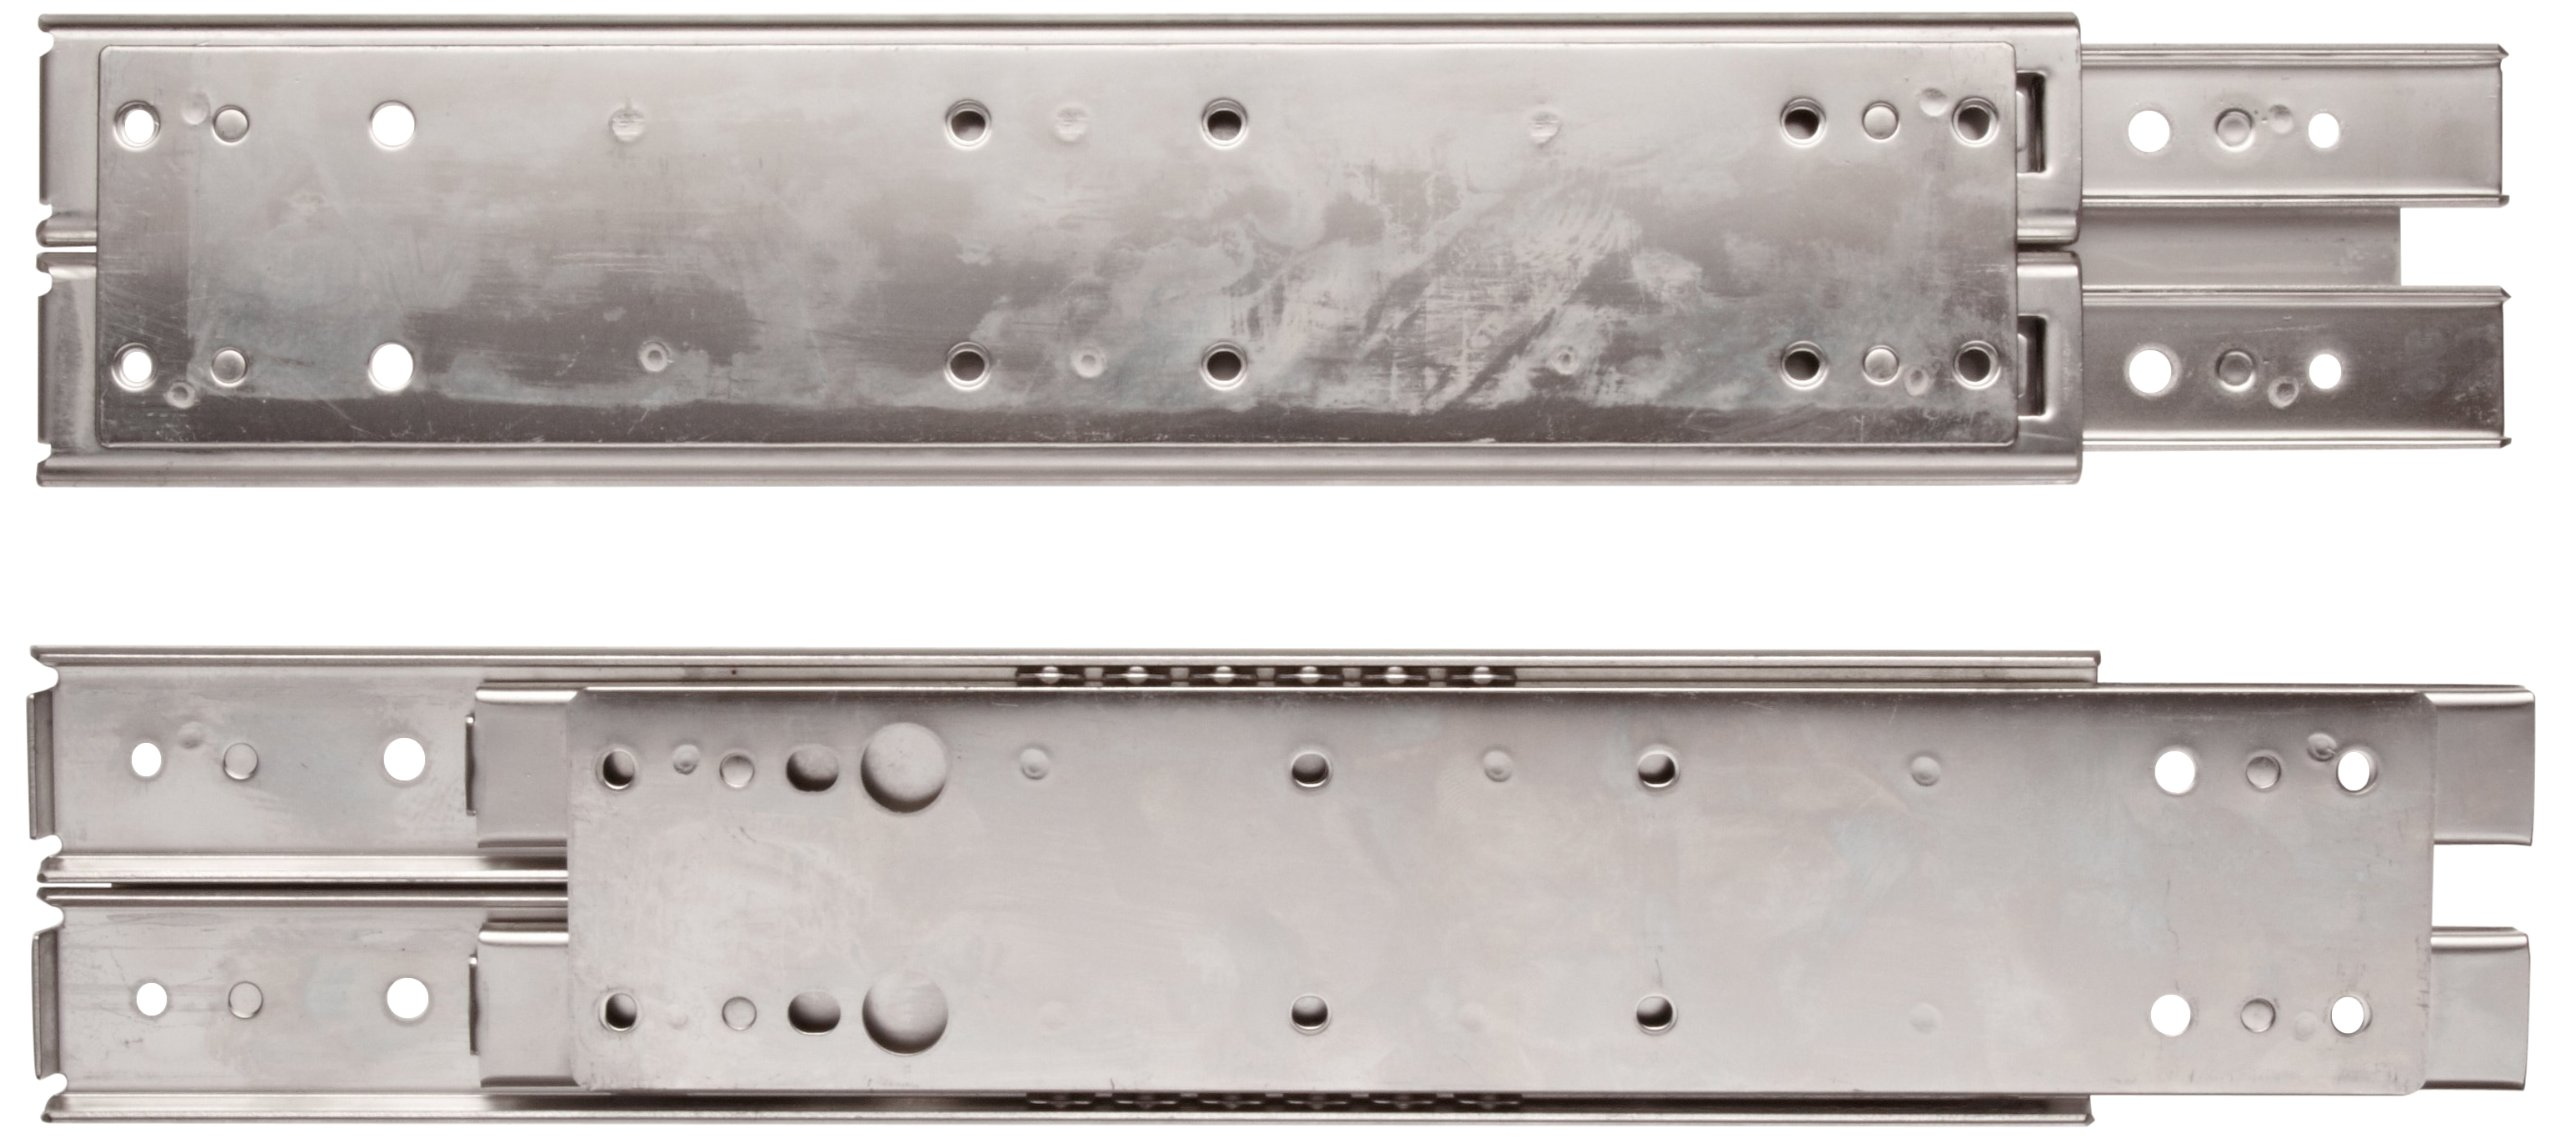 Sugastune ESR-5 304 Stainless Steel Drawer Slide, 3/4 Extension, Positive Stop, 16'' Closed, 11-47/64'' Travel, 229lbs/Pack (1 Pair)